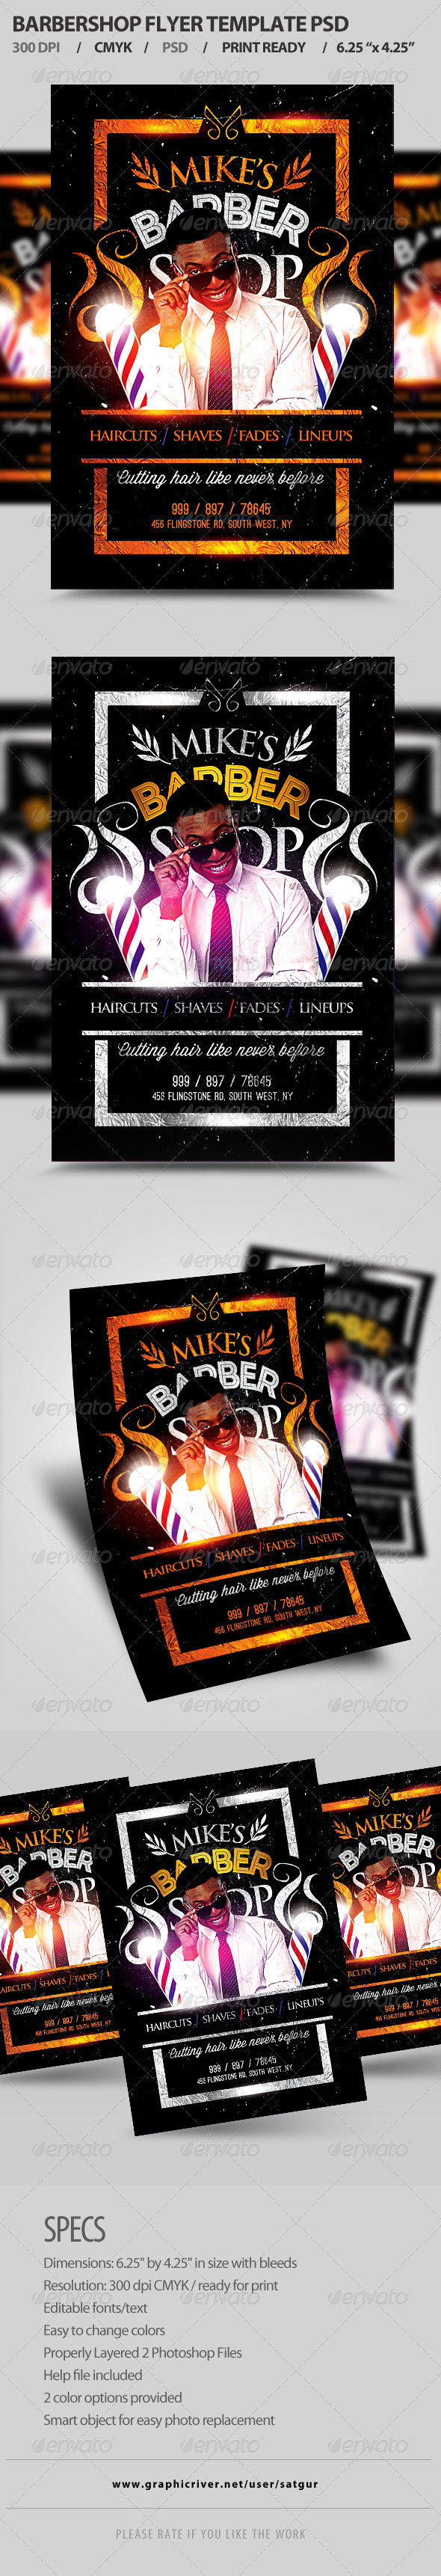 GraphicRiver Barbershop Flyer Template PSD 8188811